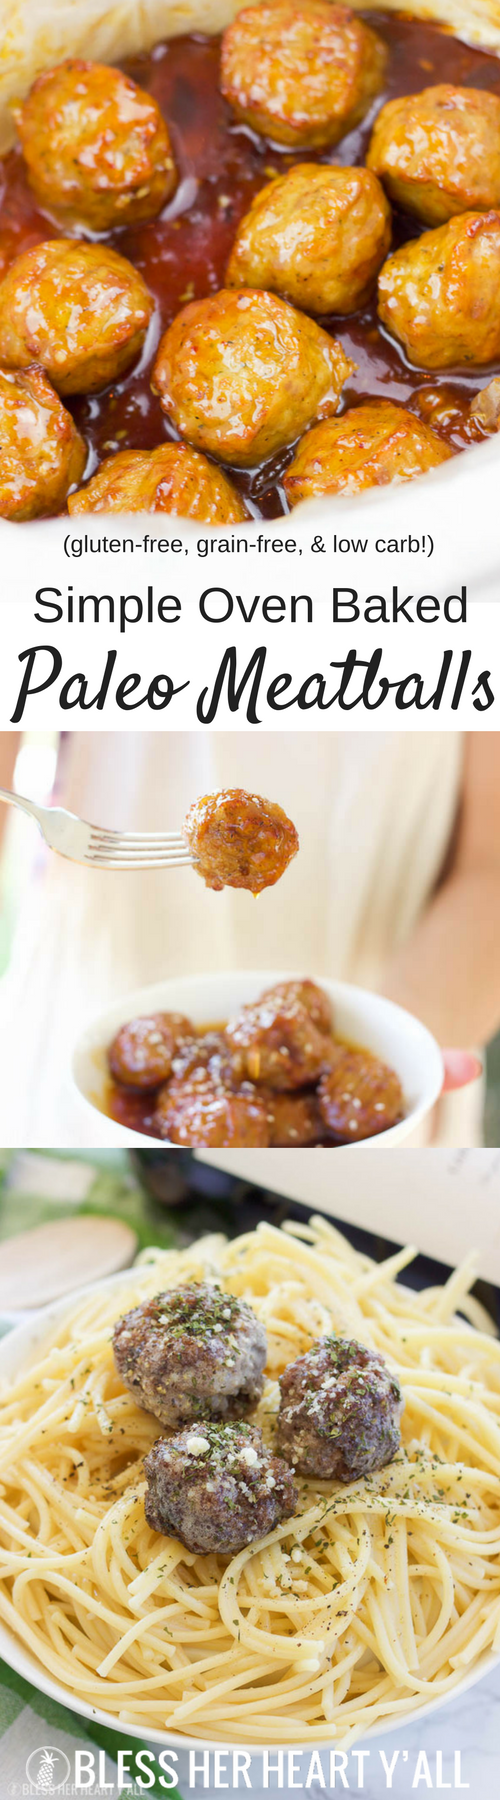 These simple oven baked paleo meatballs are the bomb! Okay but seriously, just combine some grass-fed beef with garlic, onion, egg, liquid aminos, and a little bit of salt and pepper. Roll them up and toss them in the oven for a few minutes and your family will have a whole mess of juicy paleo, gluten-free, and grain-free meatballs!